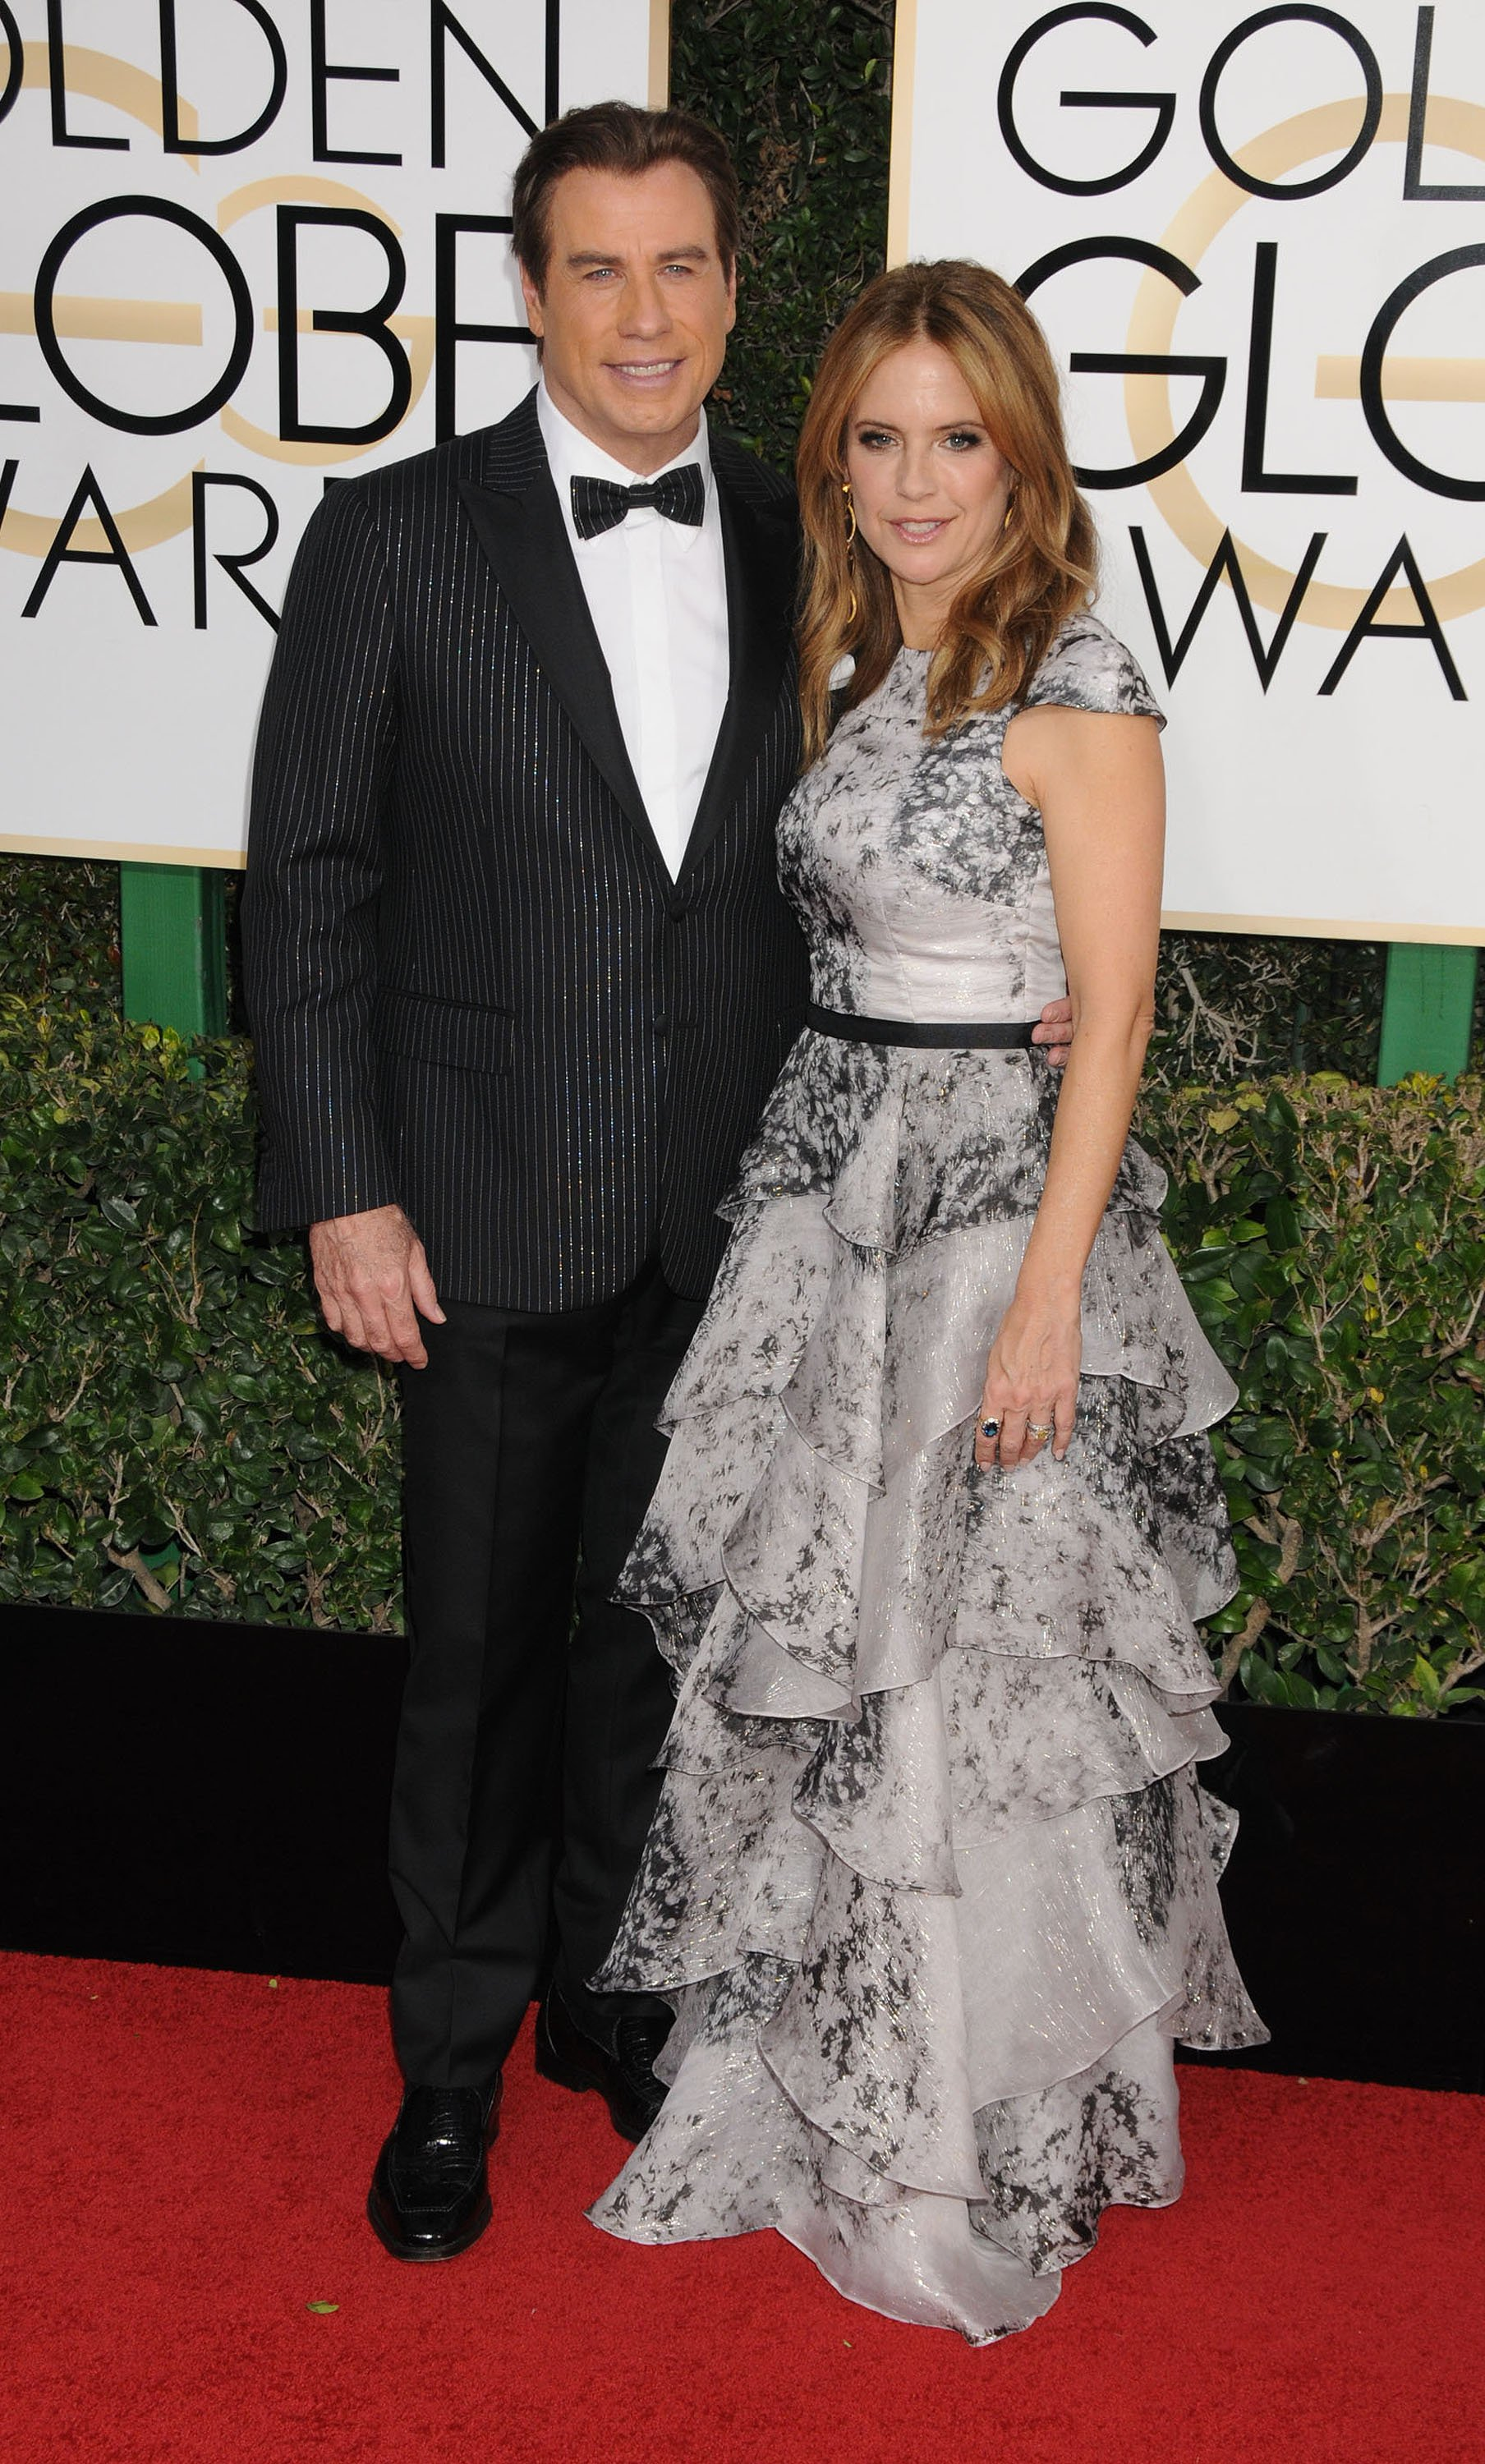 January 8, 2017 - Los Angeles, California, United States - January 8th 2017 - Los Angeles California USA - Actor  JOHN TRAVOLTA, Actress KELLY PRESTON     at the  74th Golden Globe Awards - Arrivals  held at the Beverly Hilton Hotel, Los Angeles  CA, Image: 310597425, License: Rights-managed, Restrictions: , Model Release: no, Credit line: Profimedia, Zuma Press - Archives